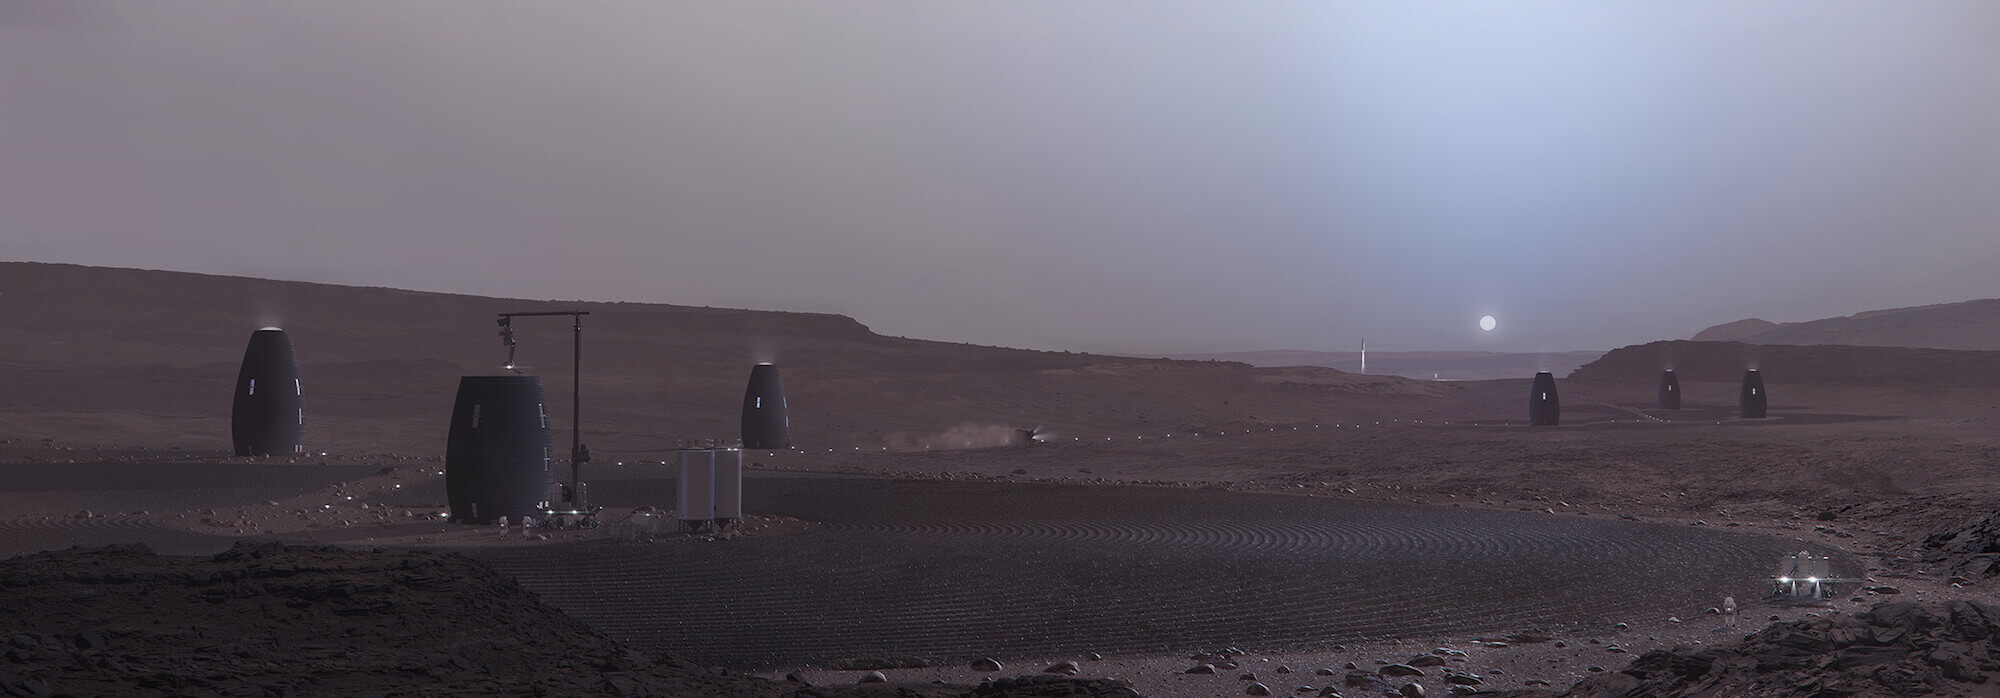 mars habitat robot harvests local materials